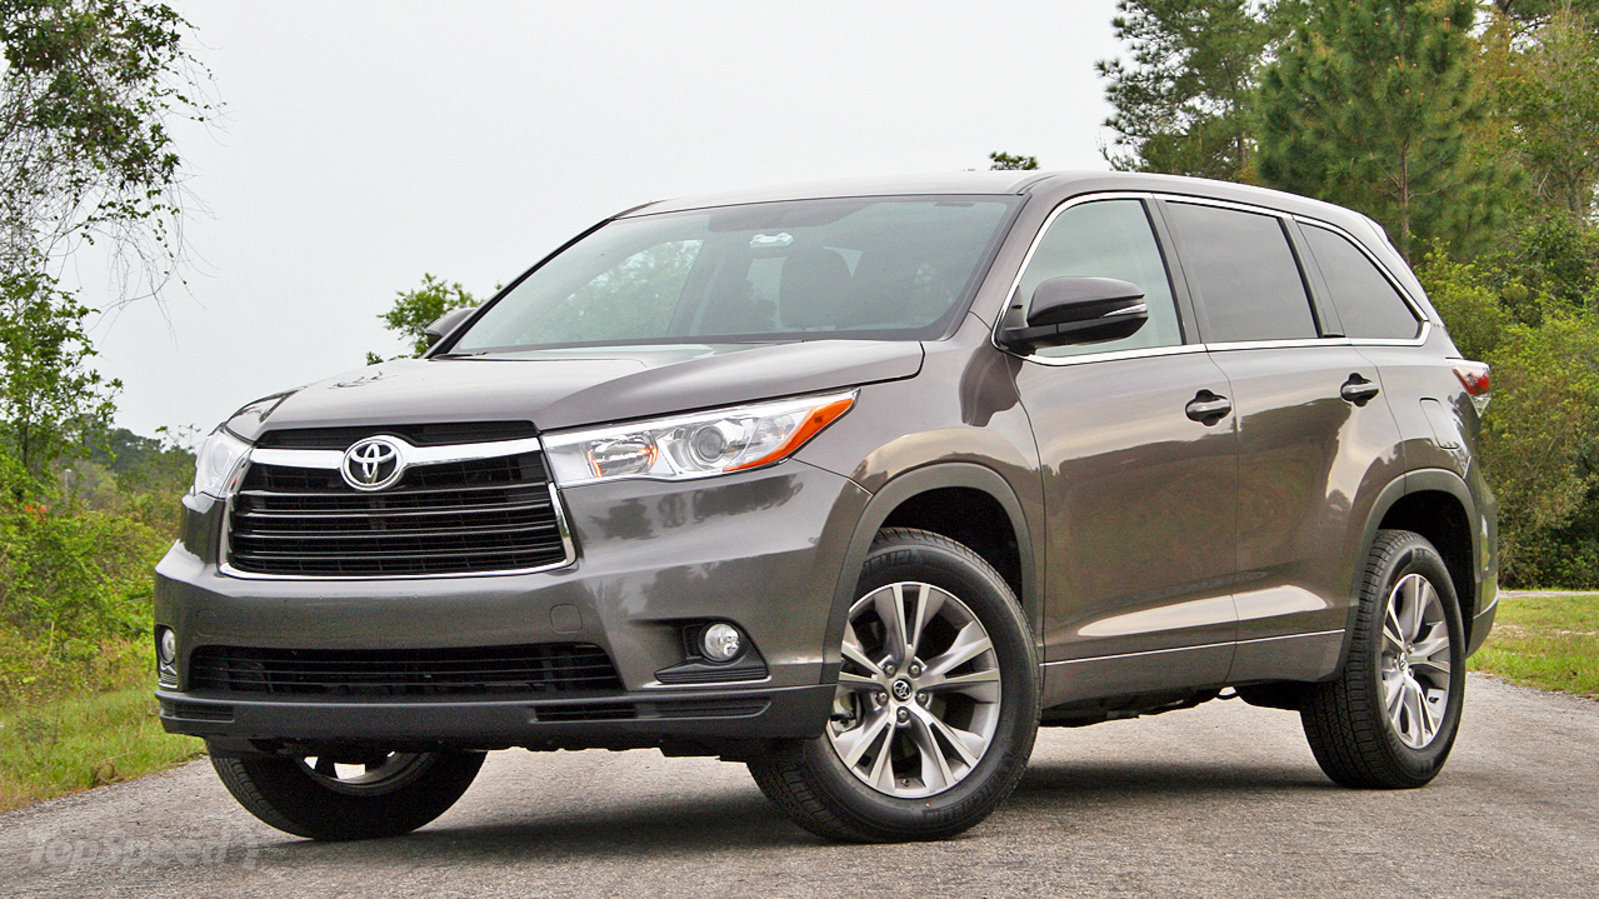 2016 toyota highlander driven review gallery top speed. Black Bedroom Furniture Sets. Home Design Ideas